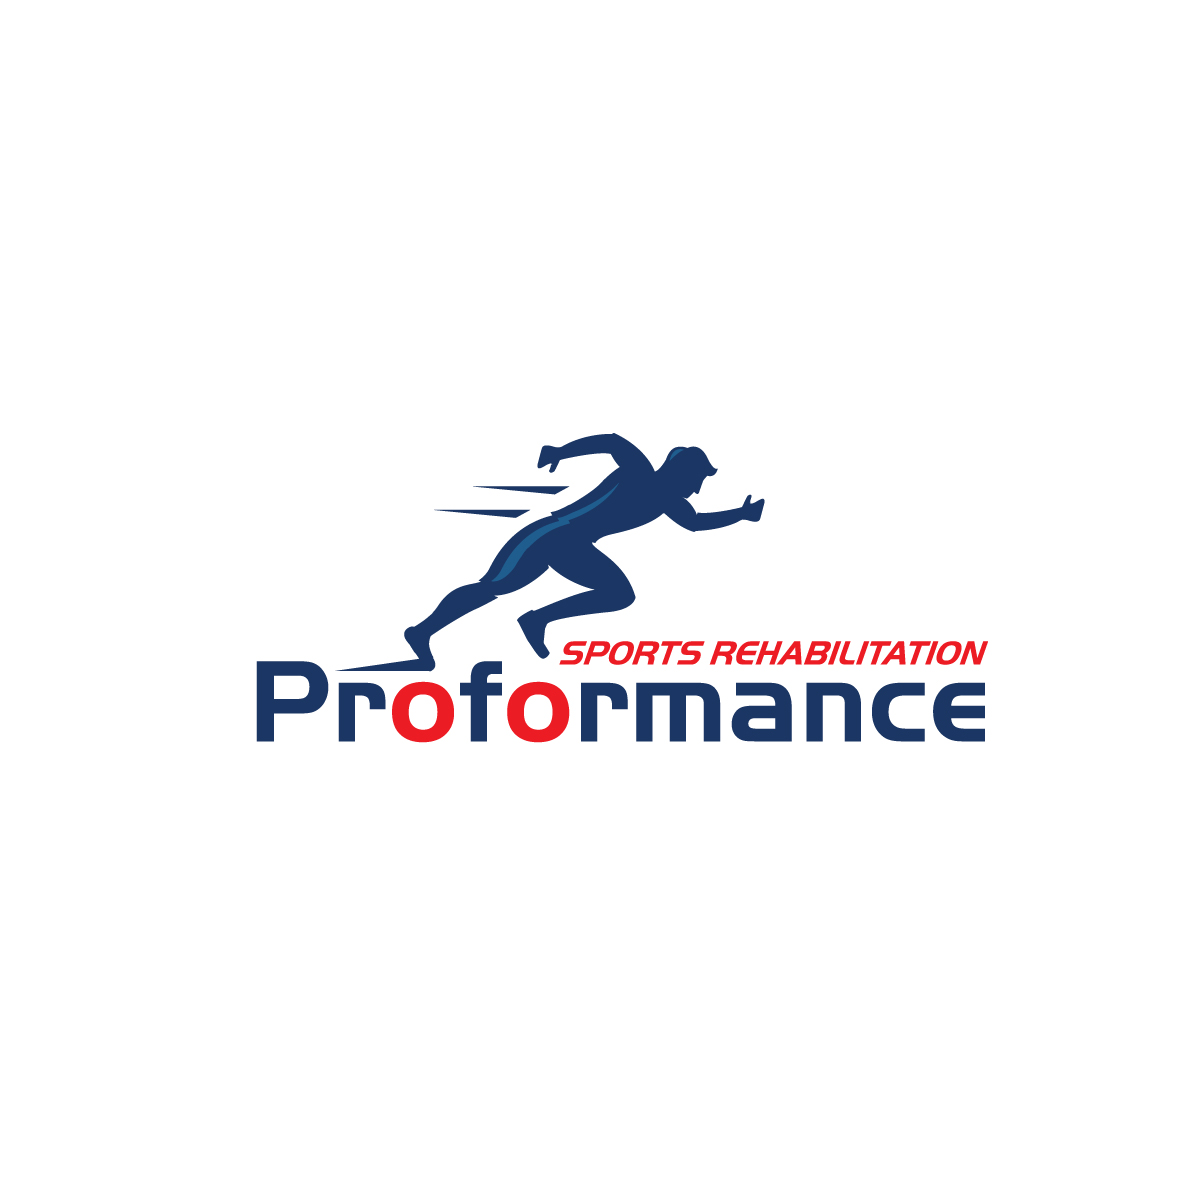 Bold Modern Physical Therapy Logo Design For Proformance Sports Rehabilitation By Creative Bugs Design 17125347